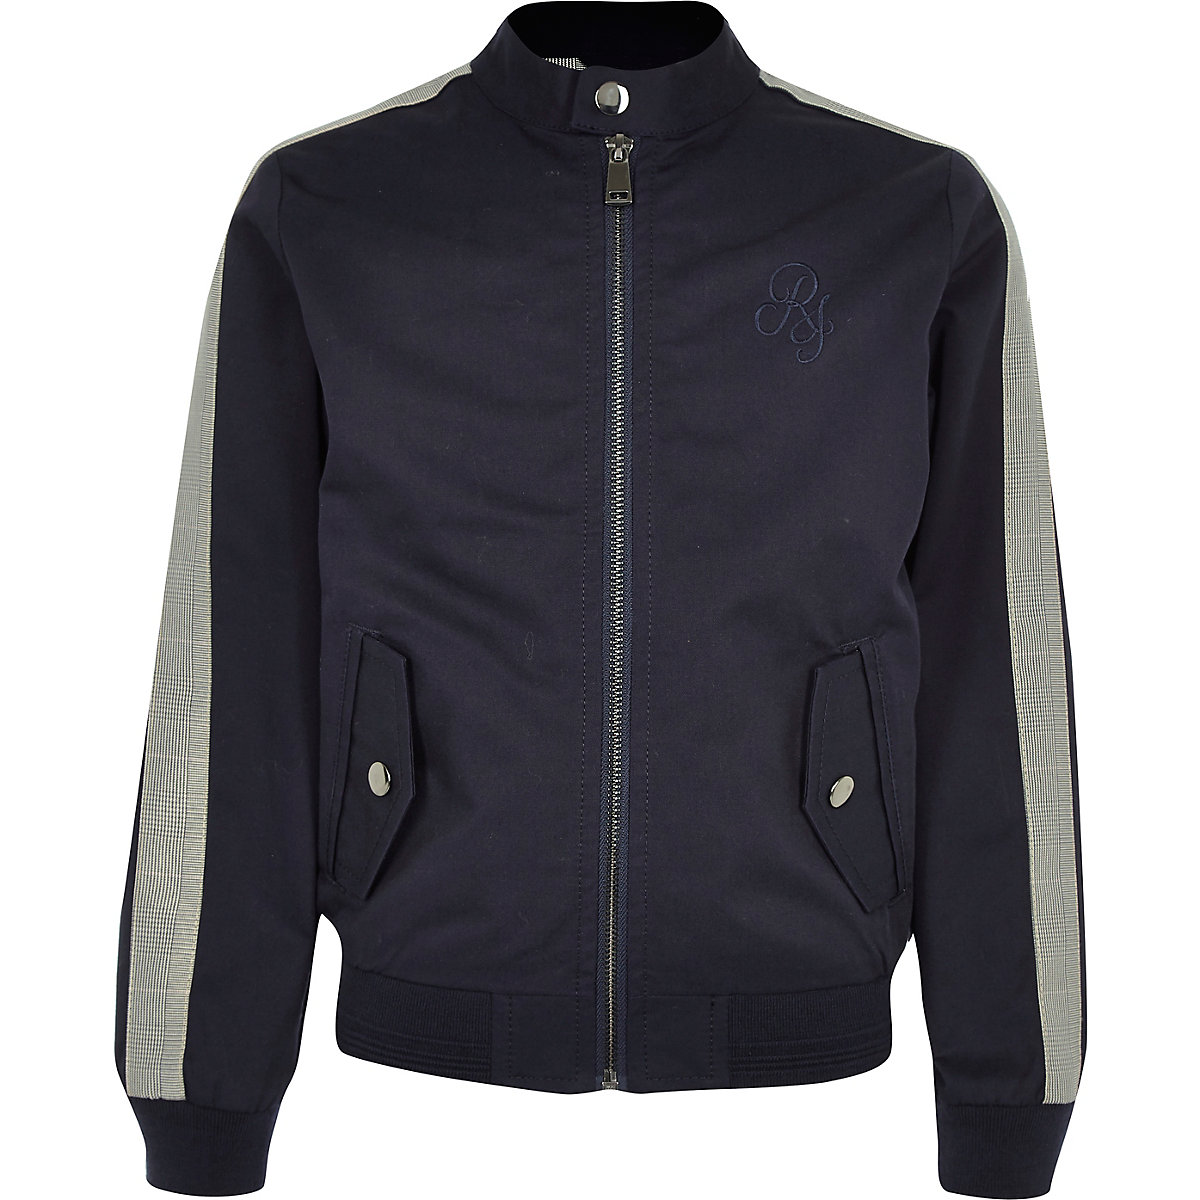 Boys navy racer neck jacket